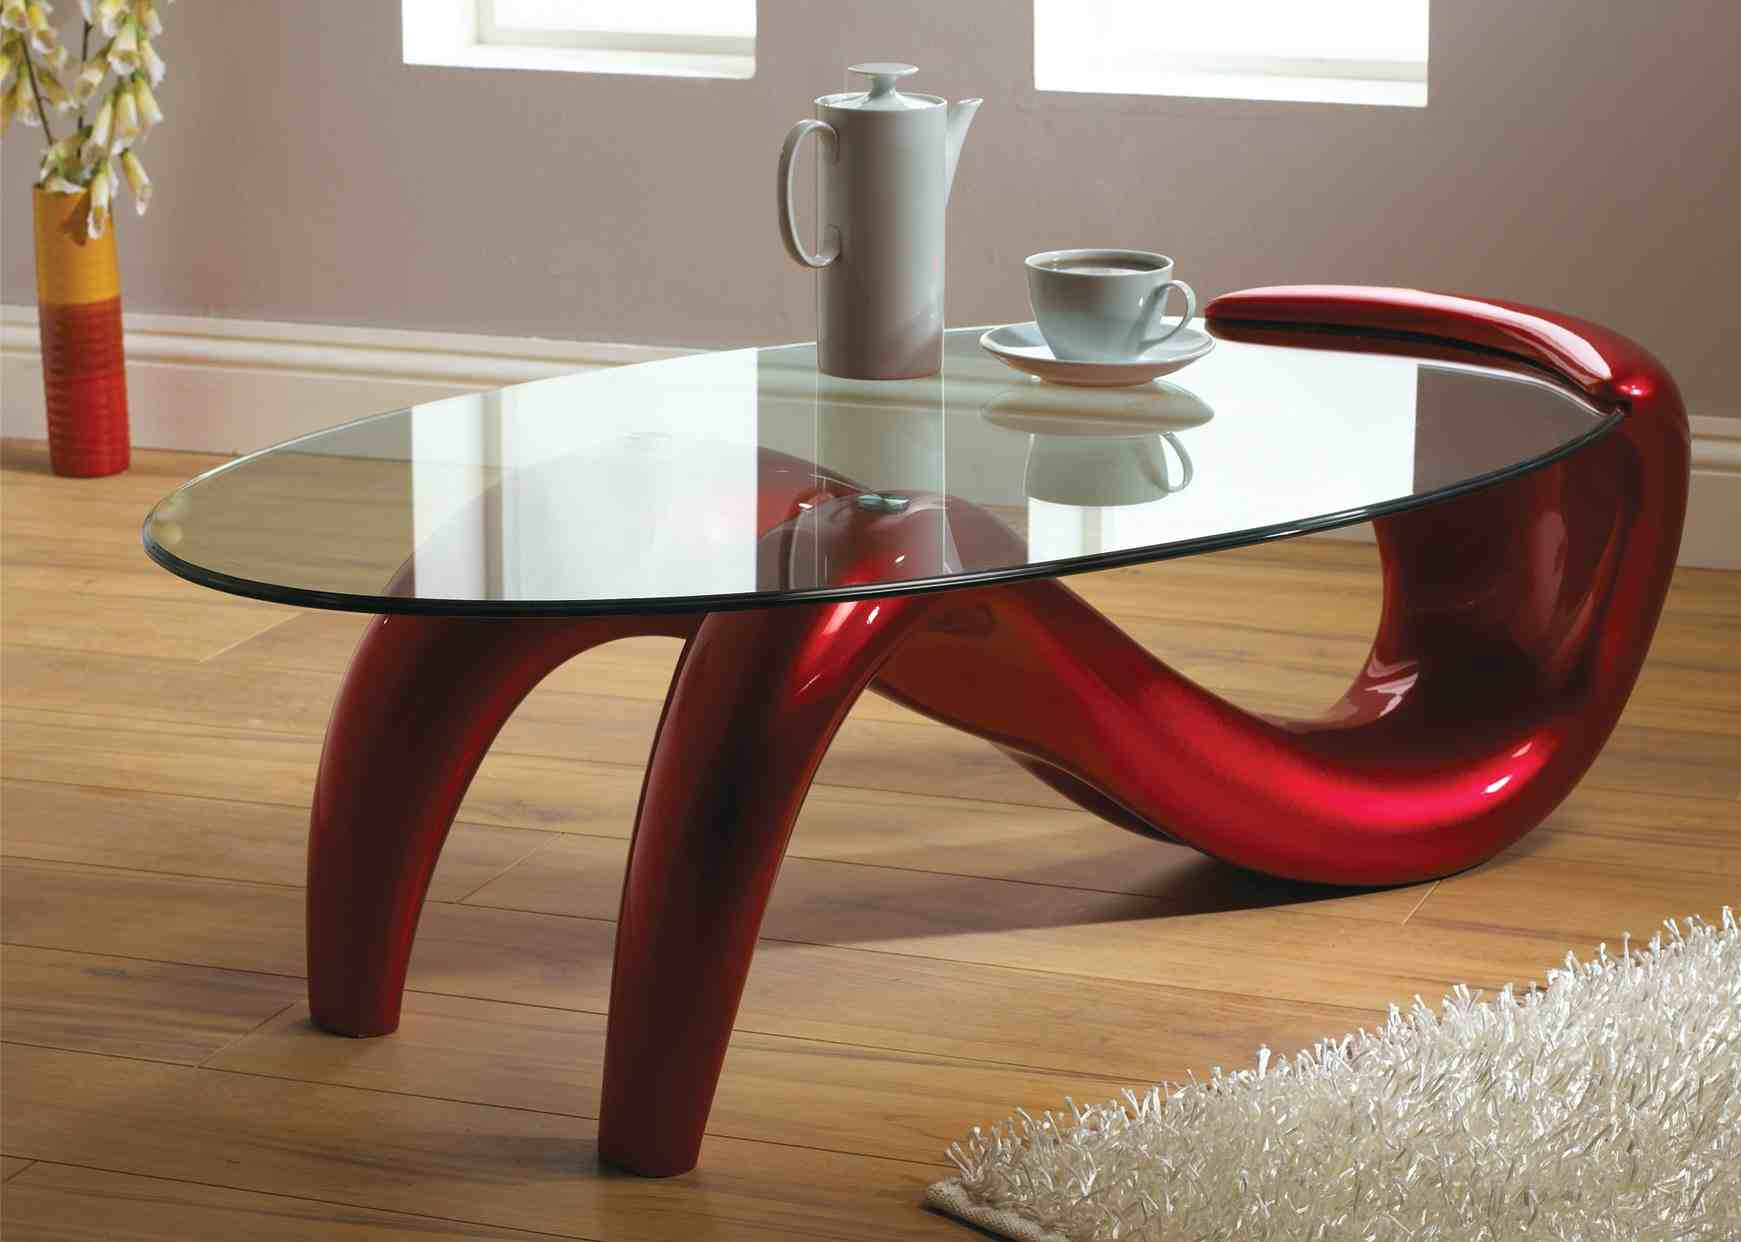 Modern glass coffee table design images photos pictures for Modern coffee table